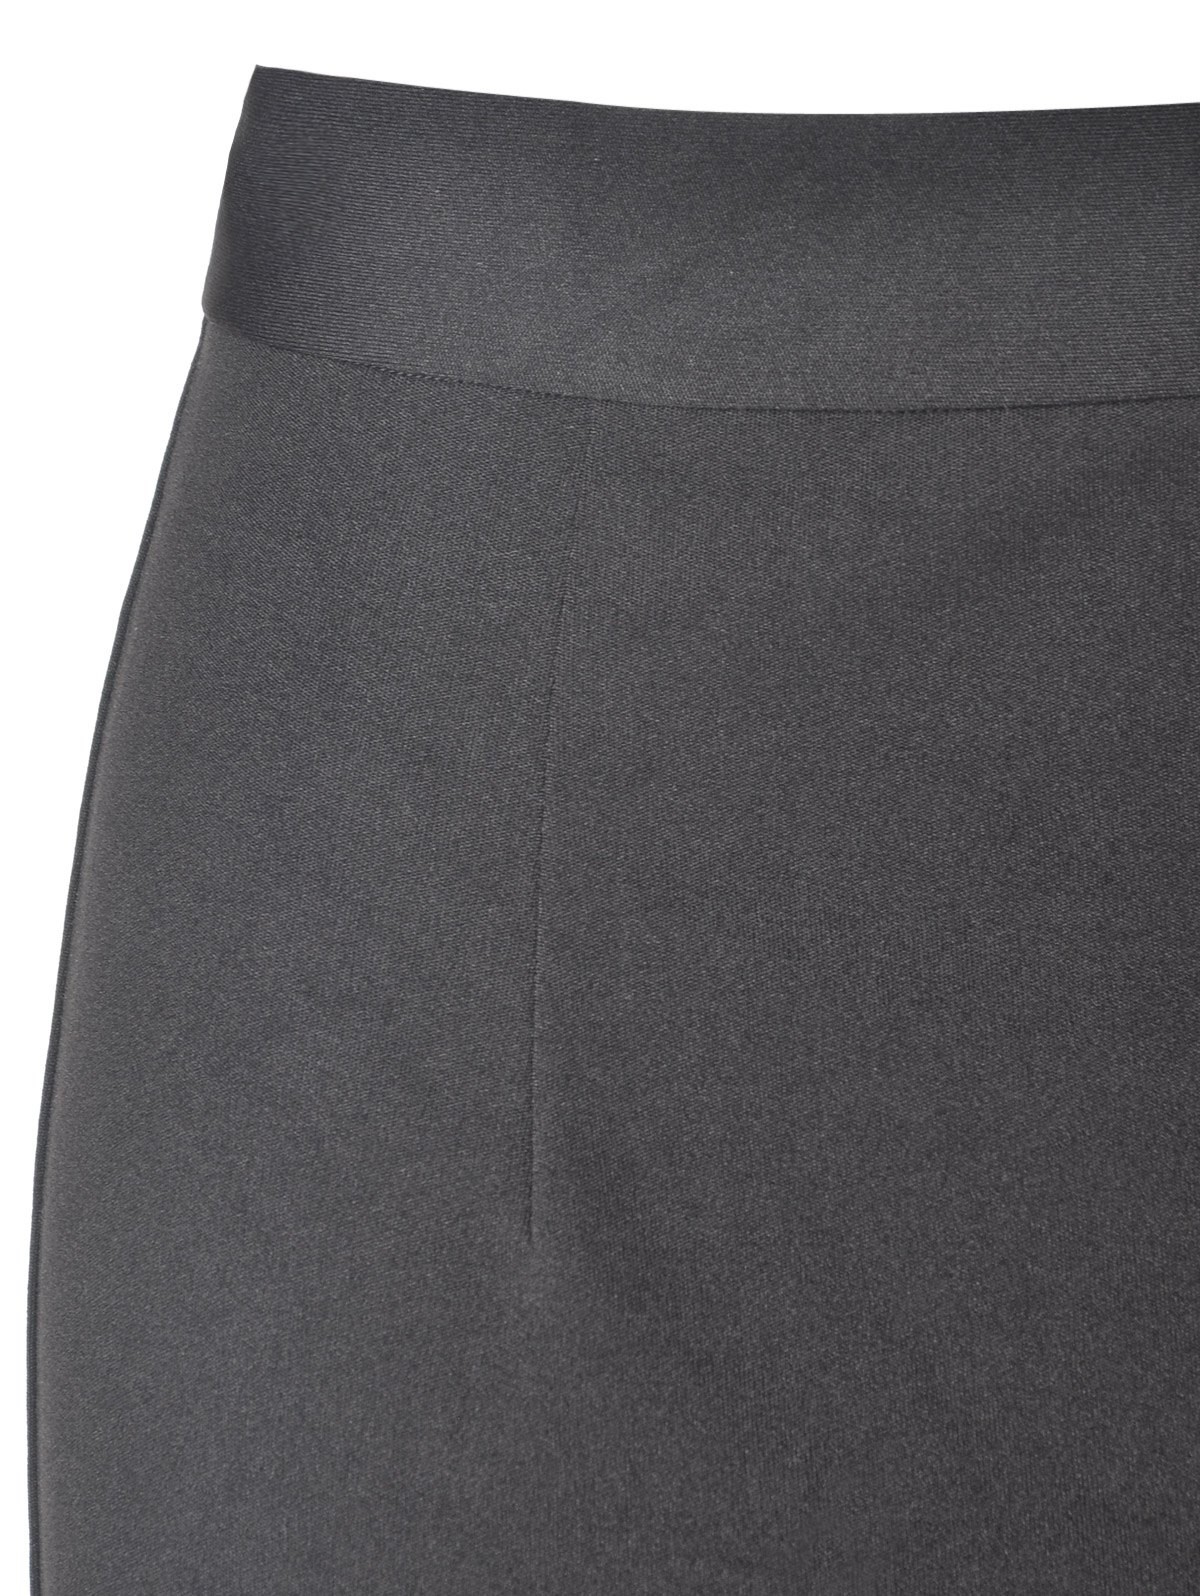 Simple Women's Fitted High Waist Solid Color Skirts - BLACK M